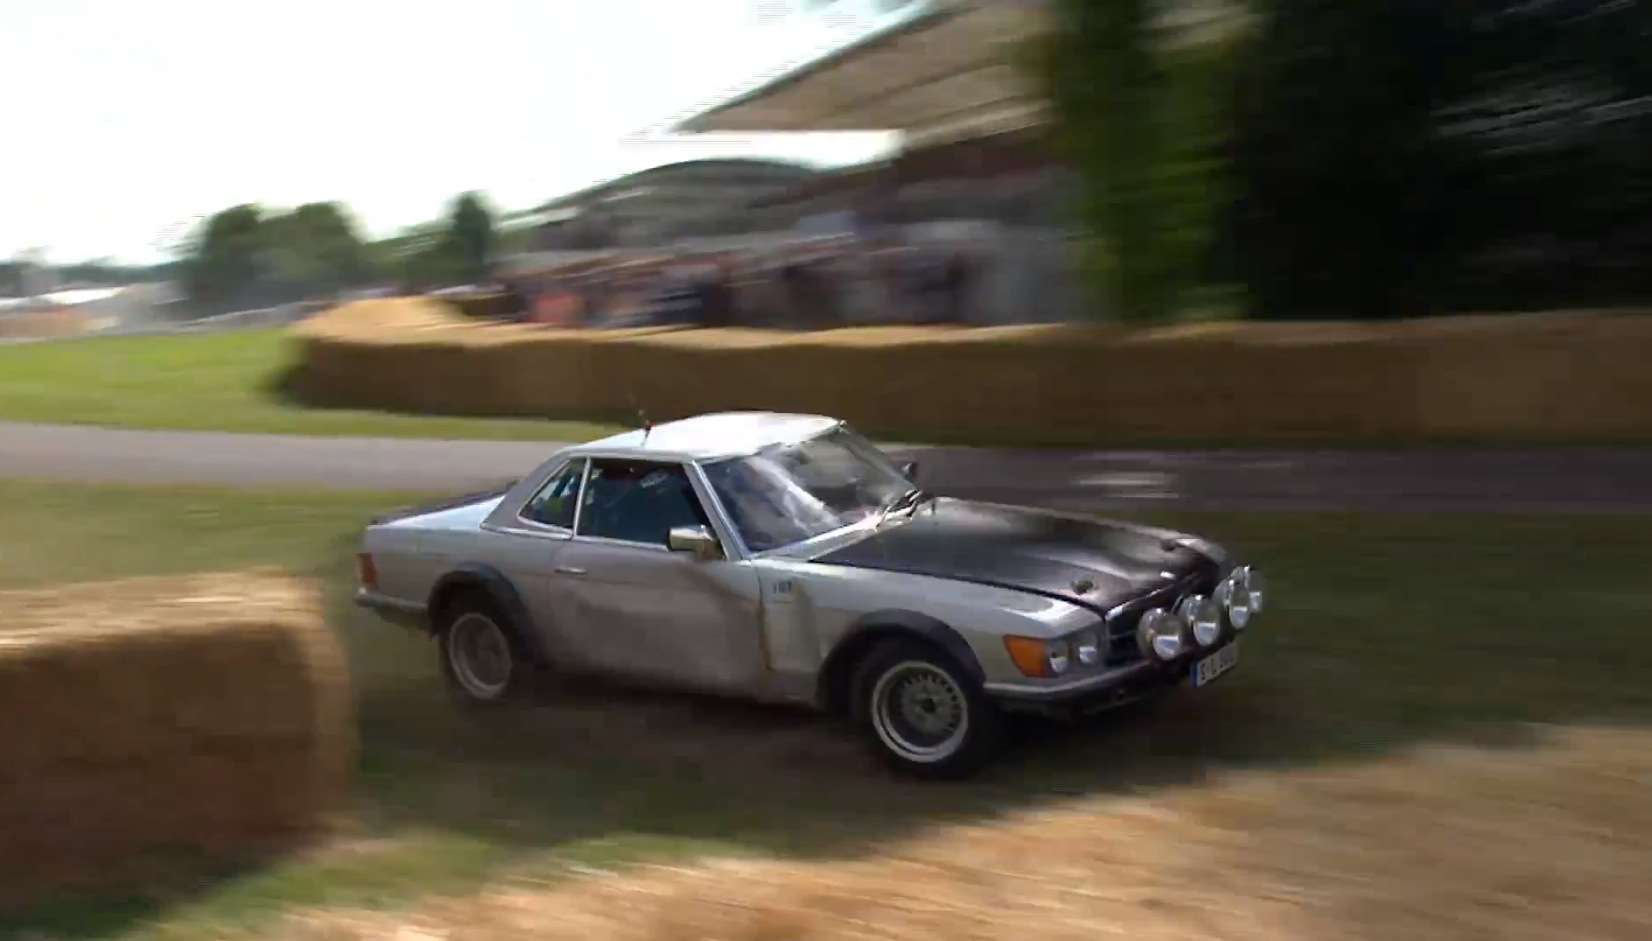 Stillborn Mercedes-Benz 500 SL Rally Car Crashes at Goodwood ...